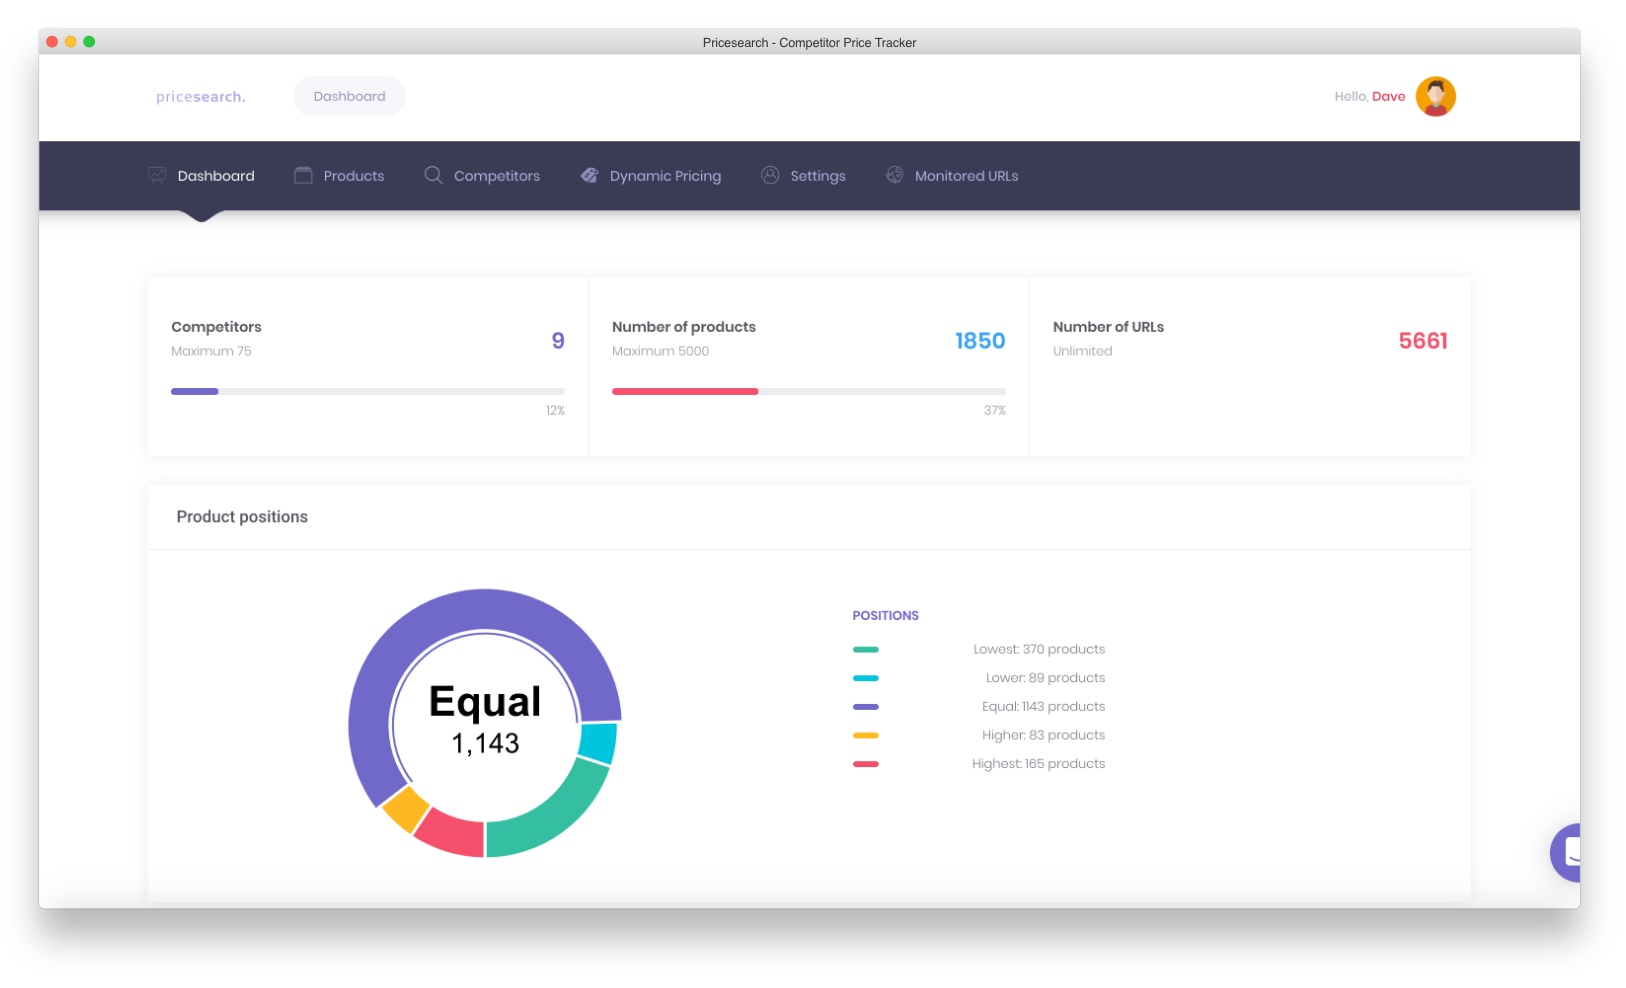 Pricesearch Dashboard